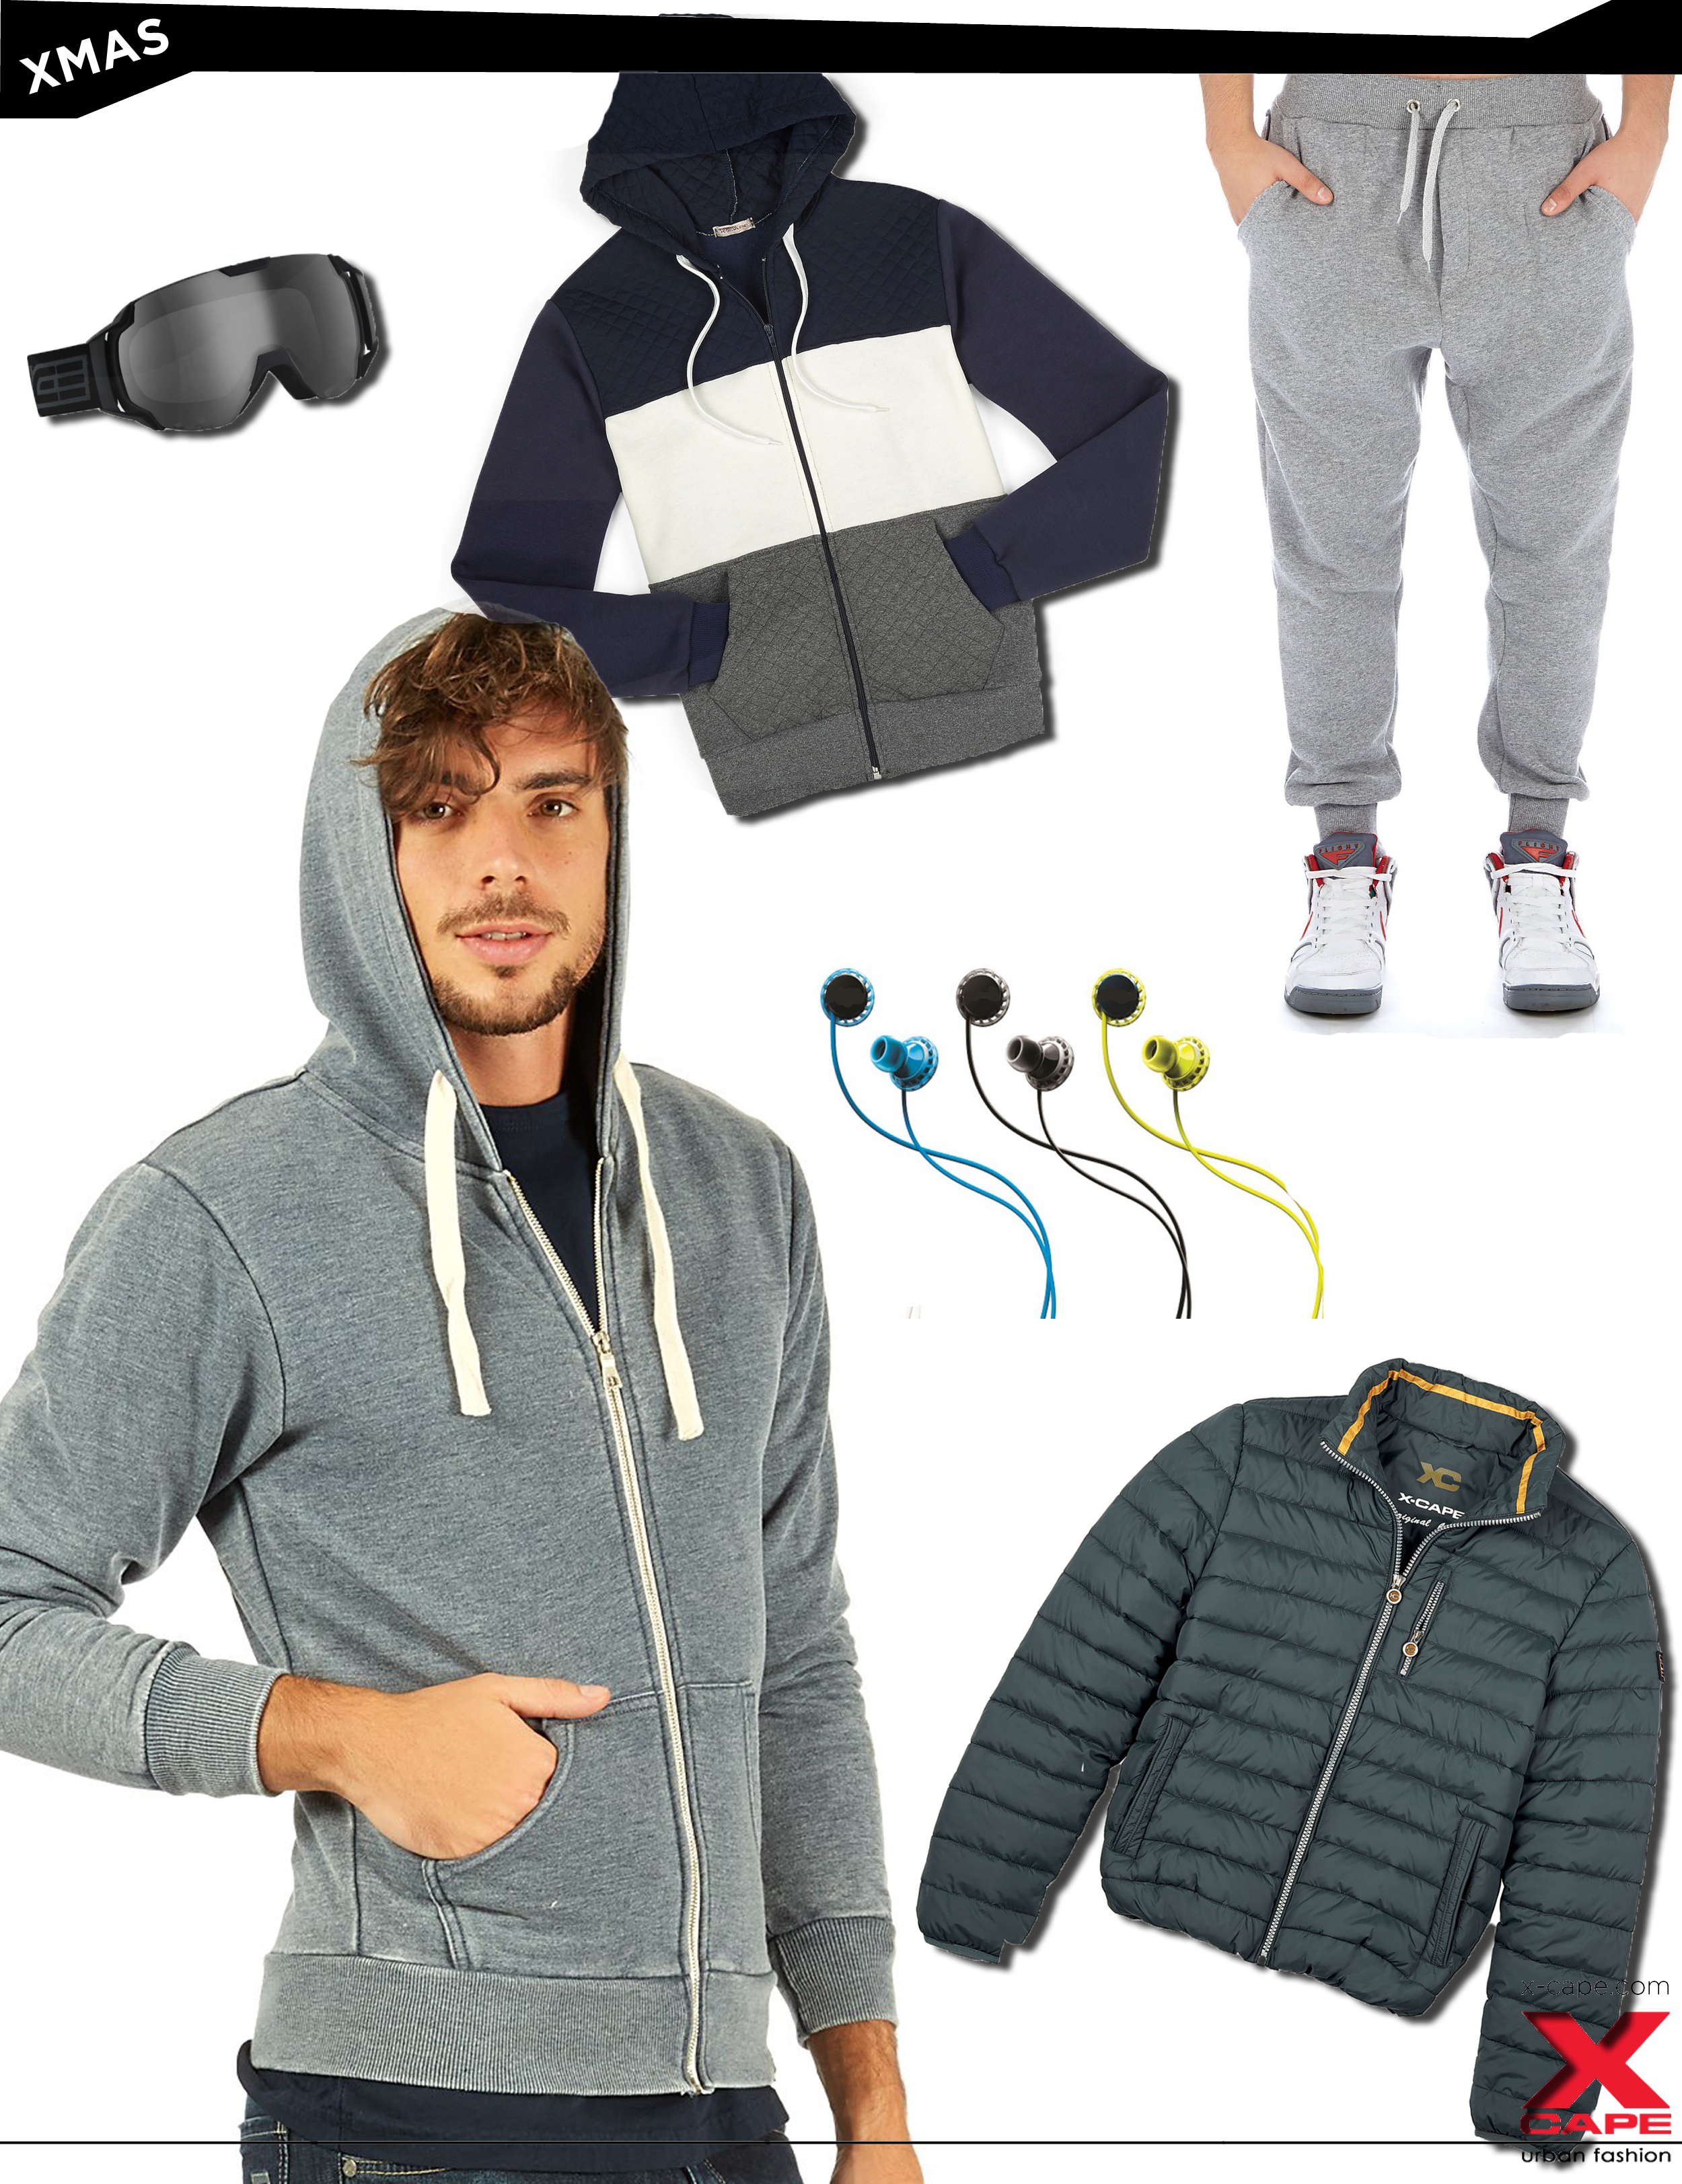 Sporty Xmas for him